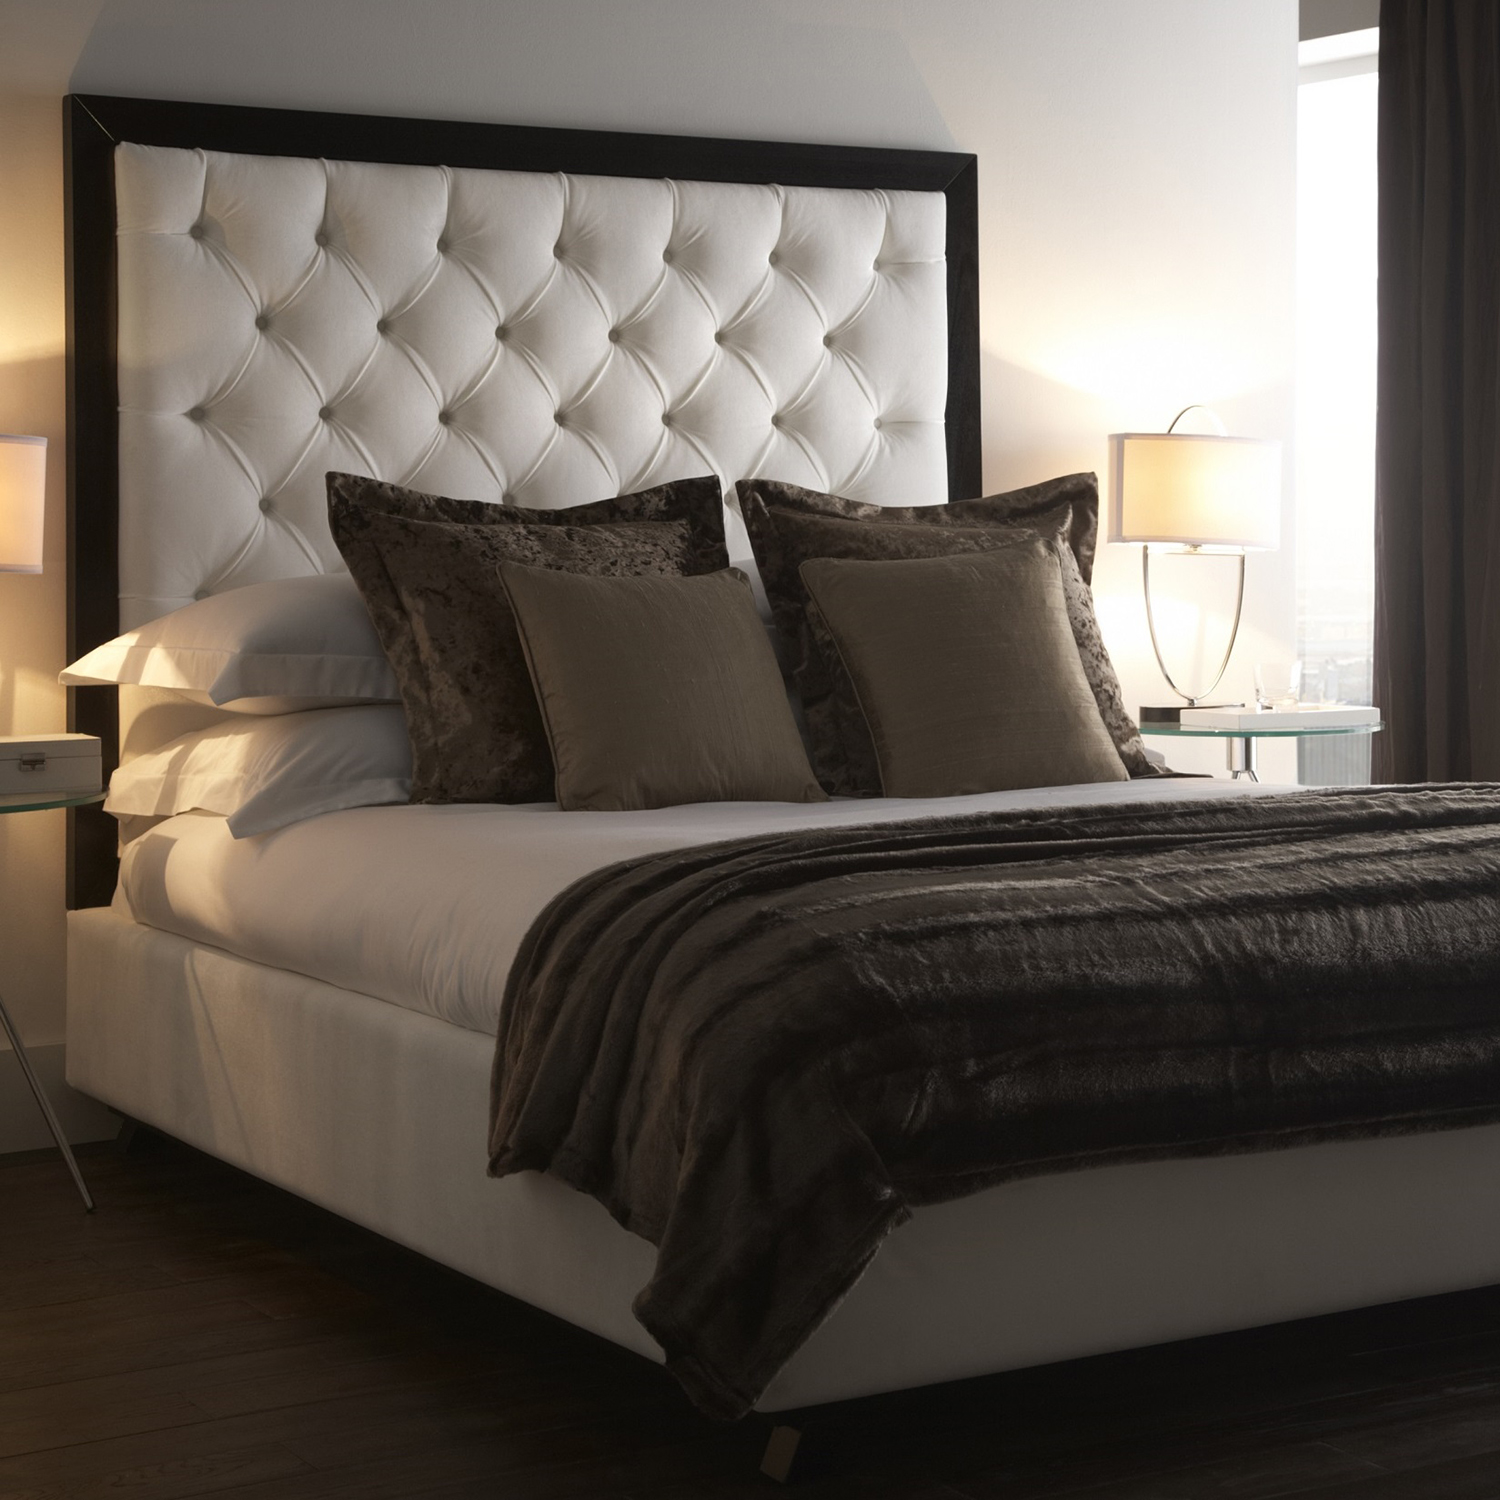 Headboards by design Bed headboard design